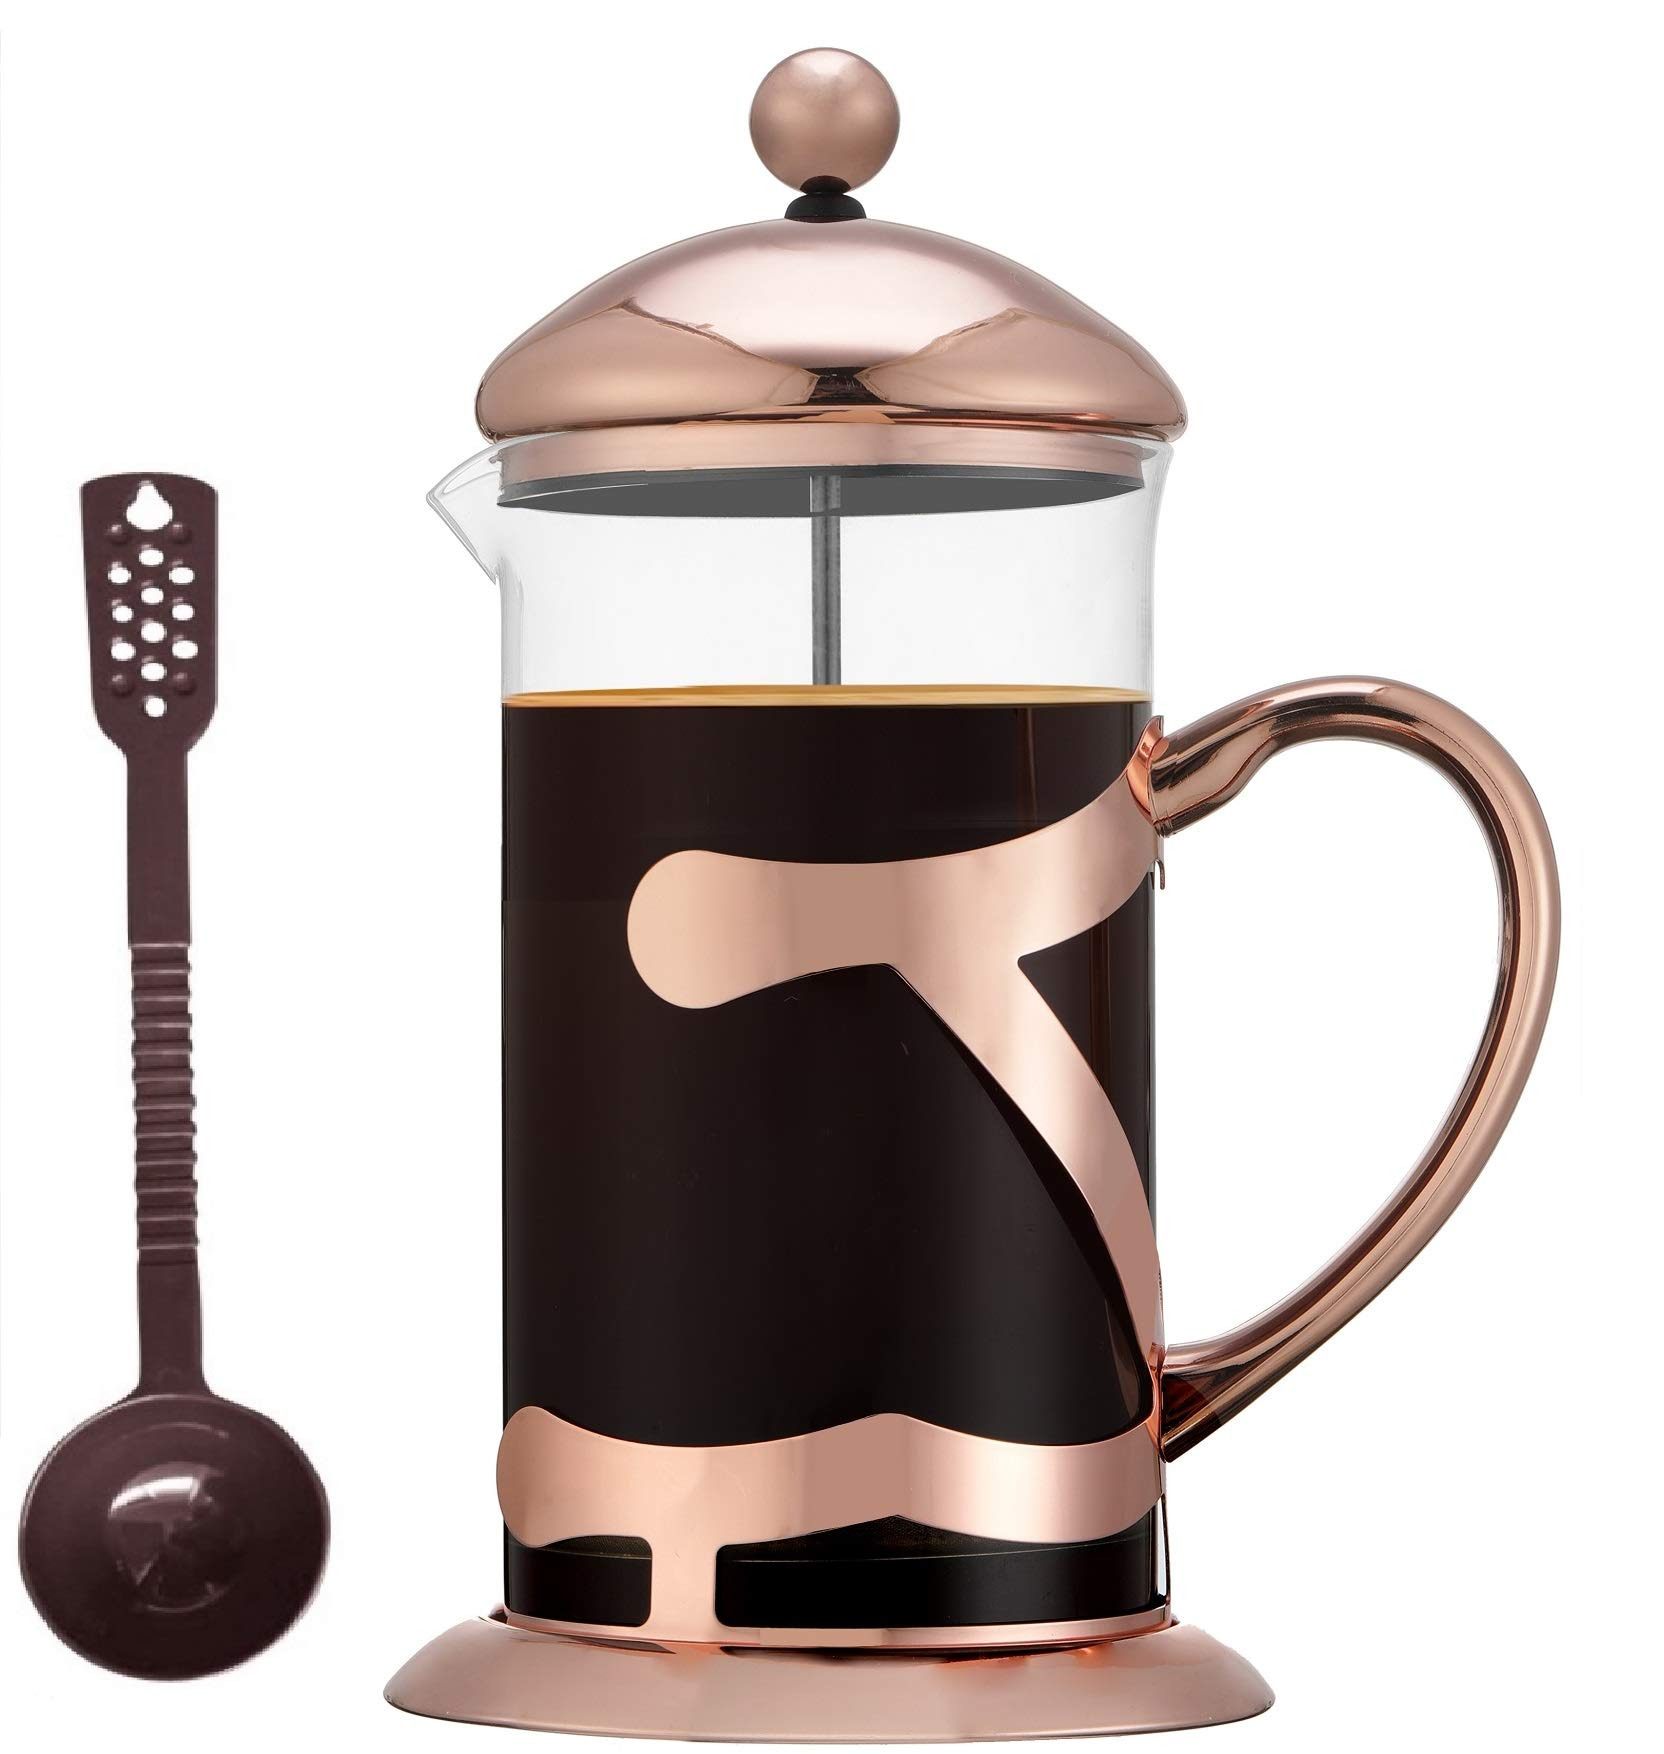 SmartHom French Press Coffee Maker 34 Oz 8 Cups, Particular Coffee Press & Tea Maker with Triple Filters & Plated Stainless Steel Base & Durable Heat Resistant Glass by SmartHom